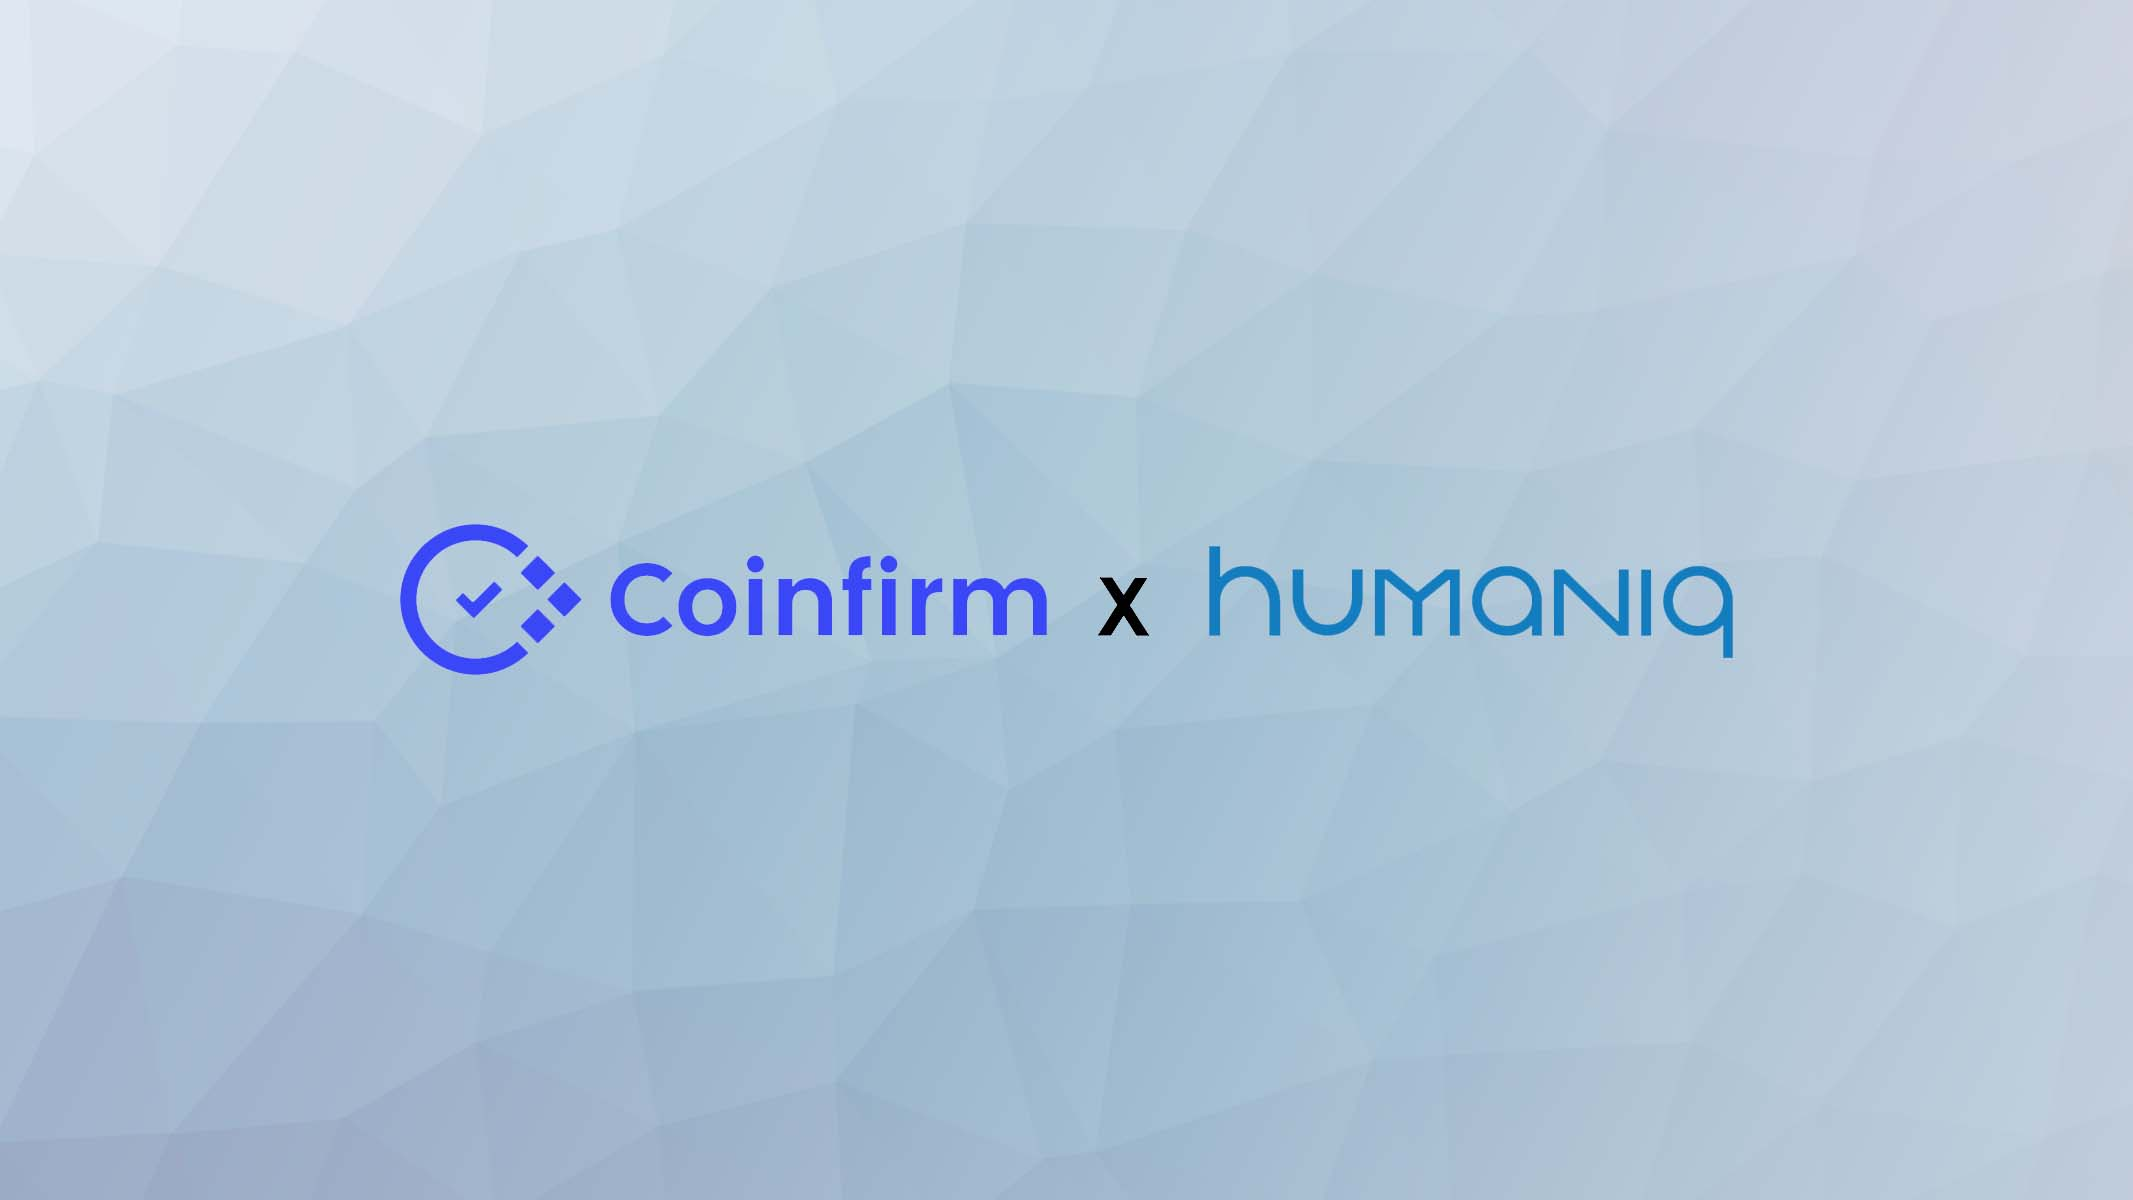 Fintech Innovator Humaniq and Regtech Leader Coinfirm Partner to Bring Financial Transparency and Inclusion to Developing Economies With Blockchain